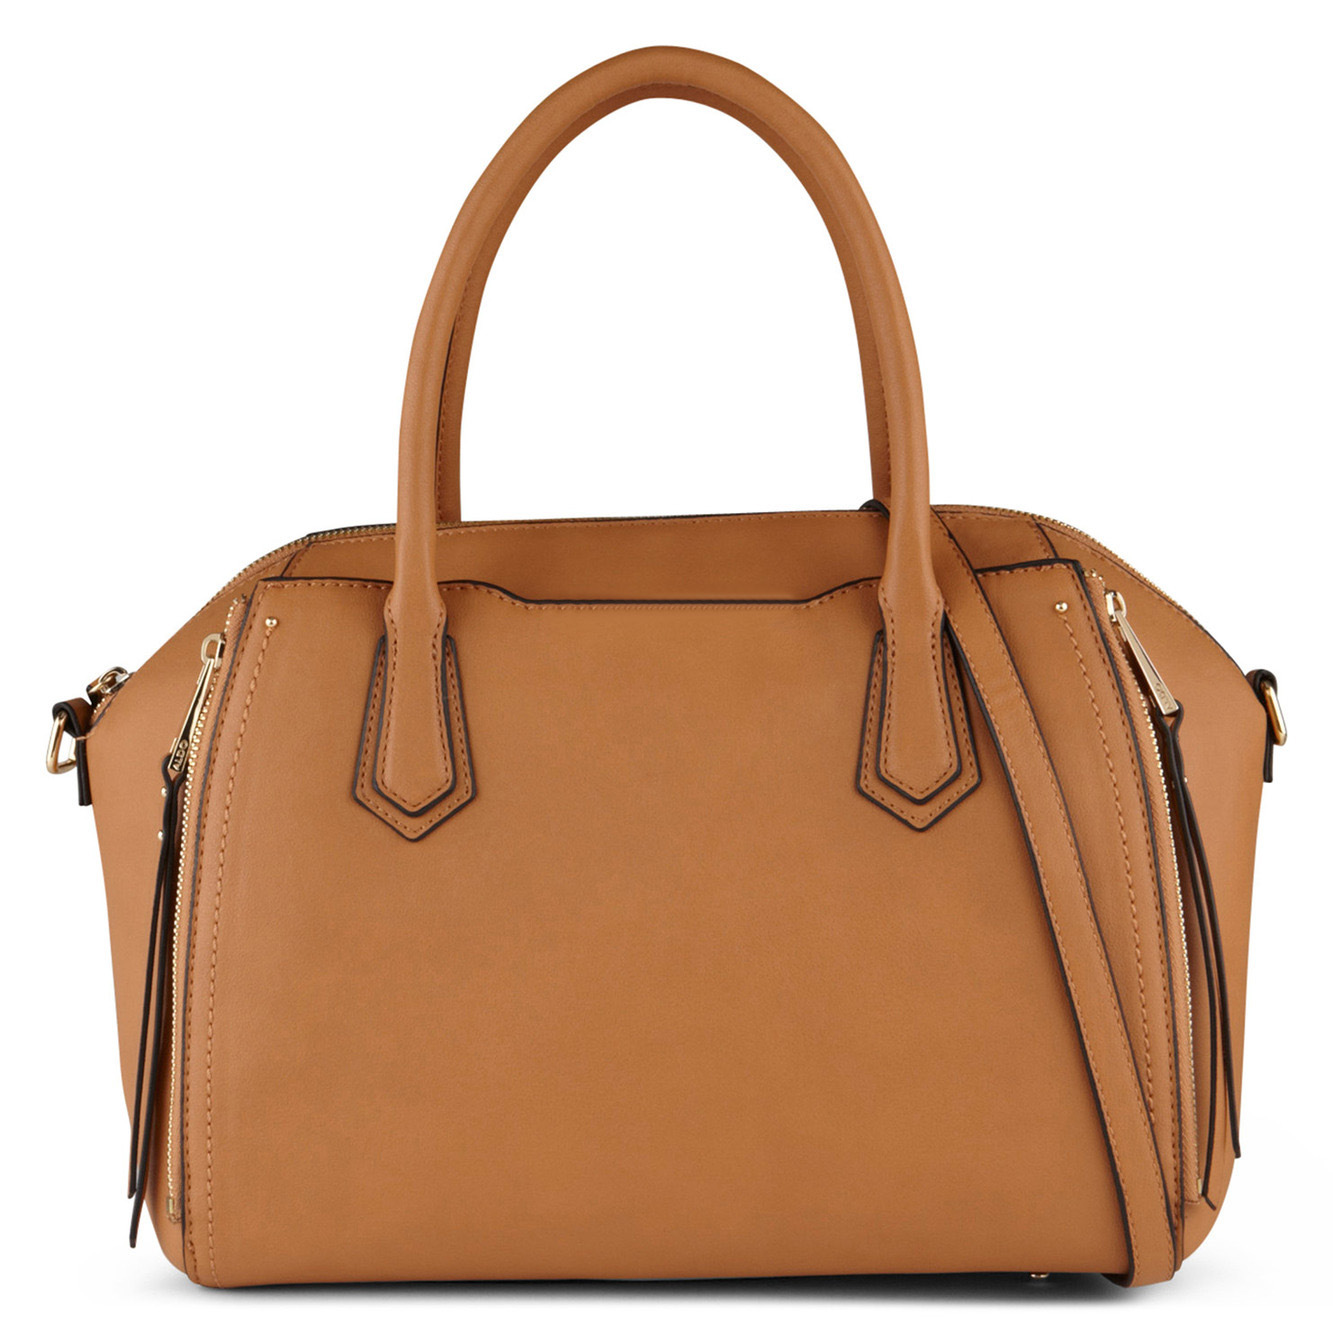 Trend Stylish Leather Handbag Products (LDO-15073)